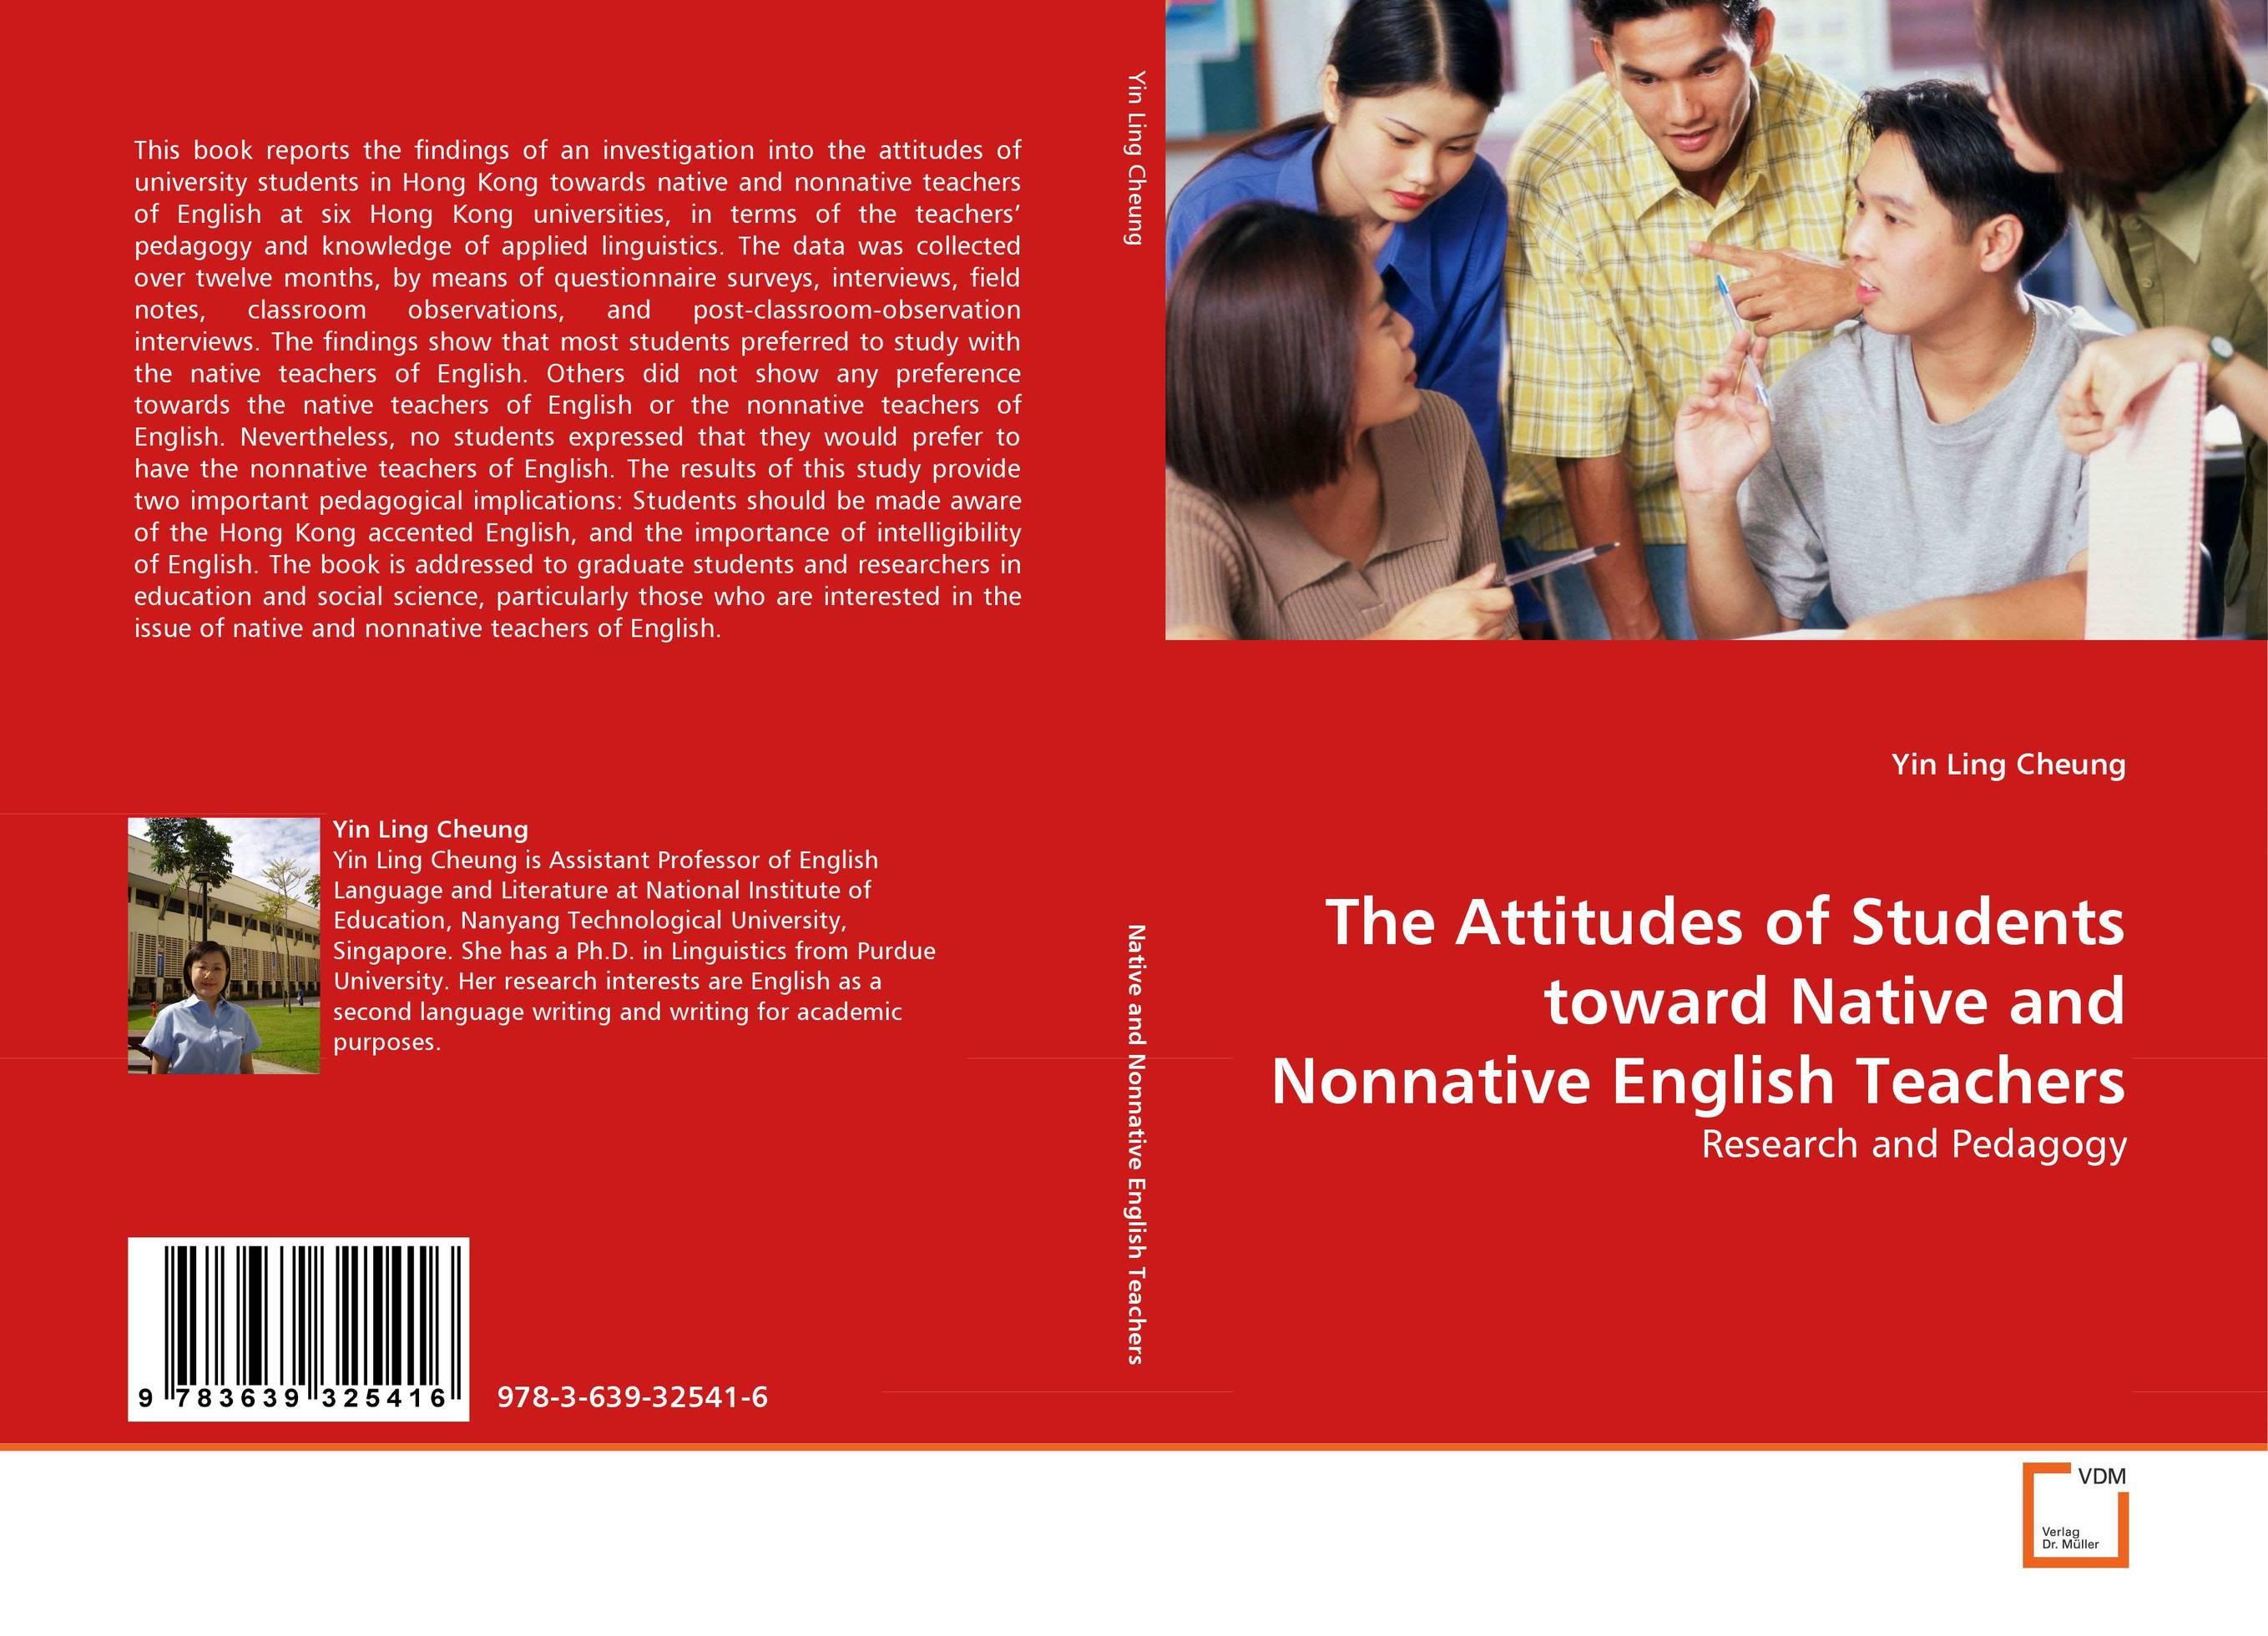 The Attitudes of Students toward Native and Nonnative English Teachers the impact of technology toward students performance